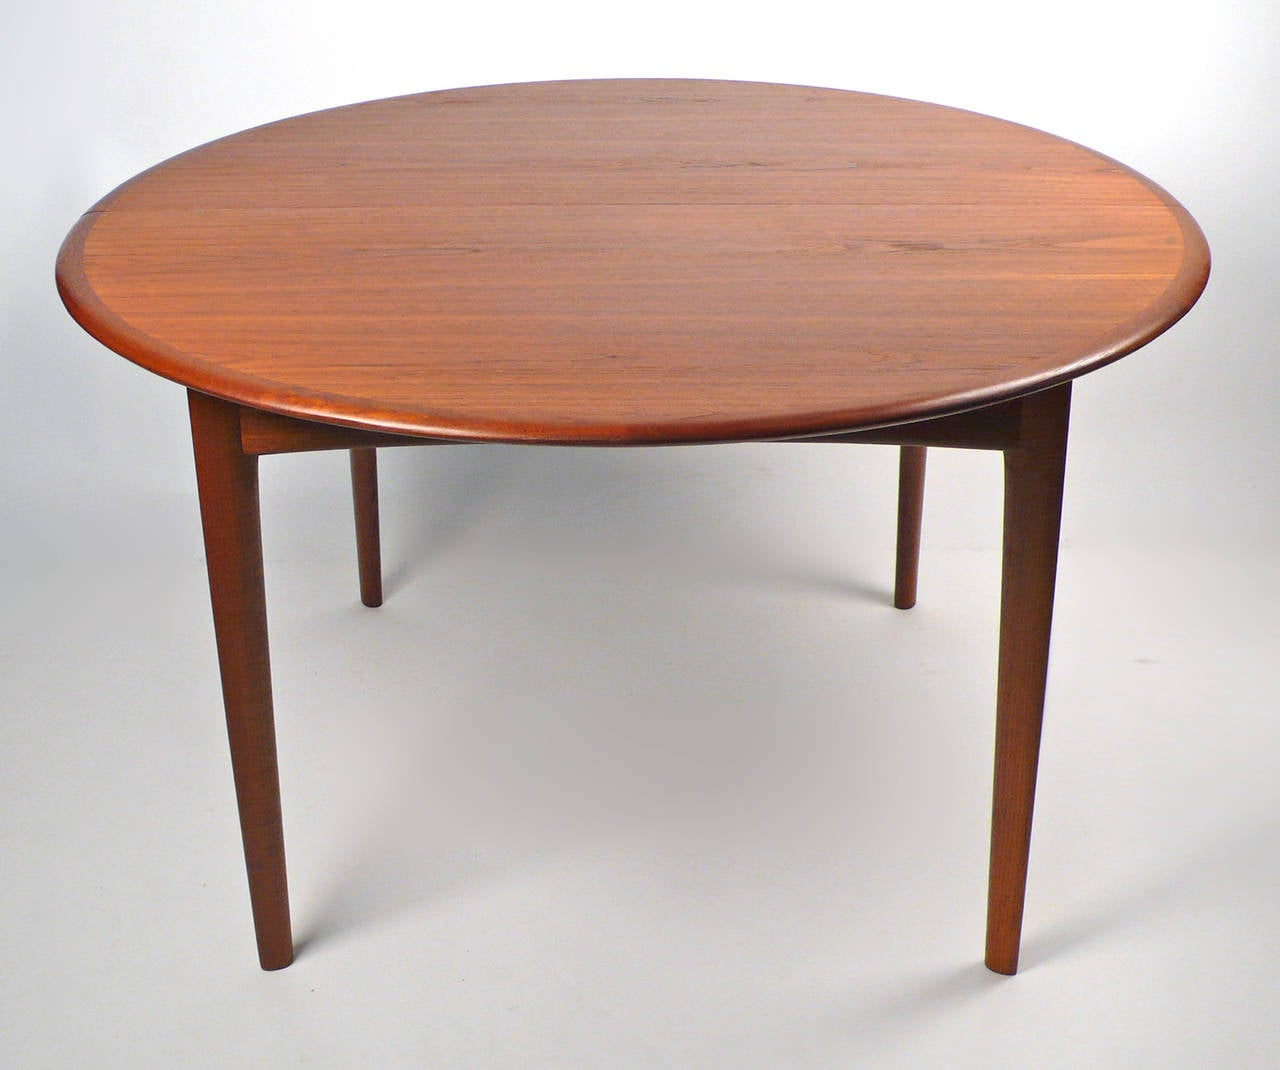 svend madsen danish modern extension dining table at stdibs - svend madsen danish modern extension dining table